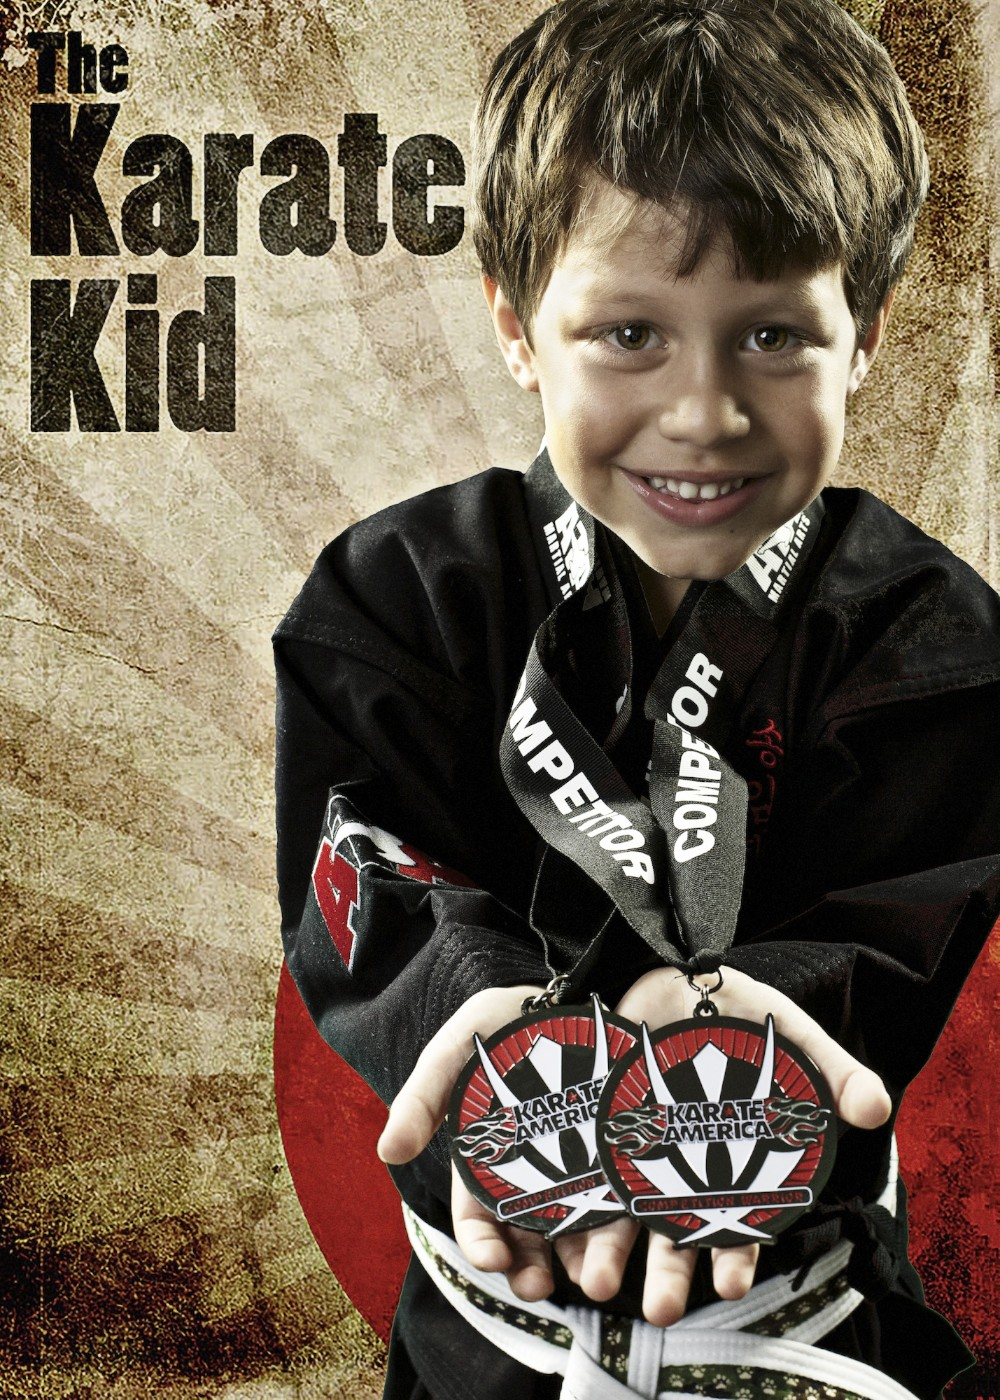 miami_fotographer_boy_karate_kid_poster